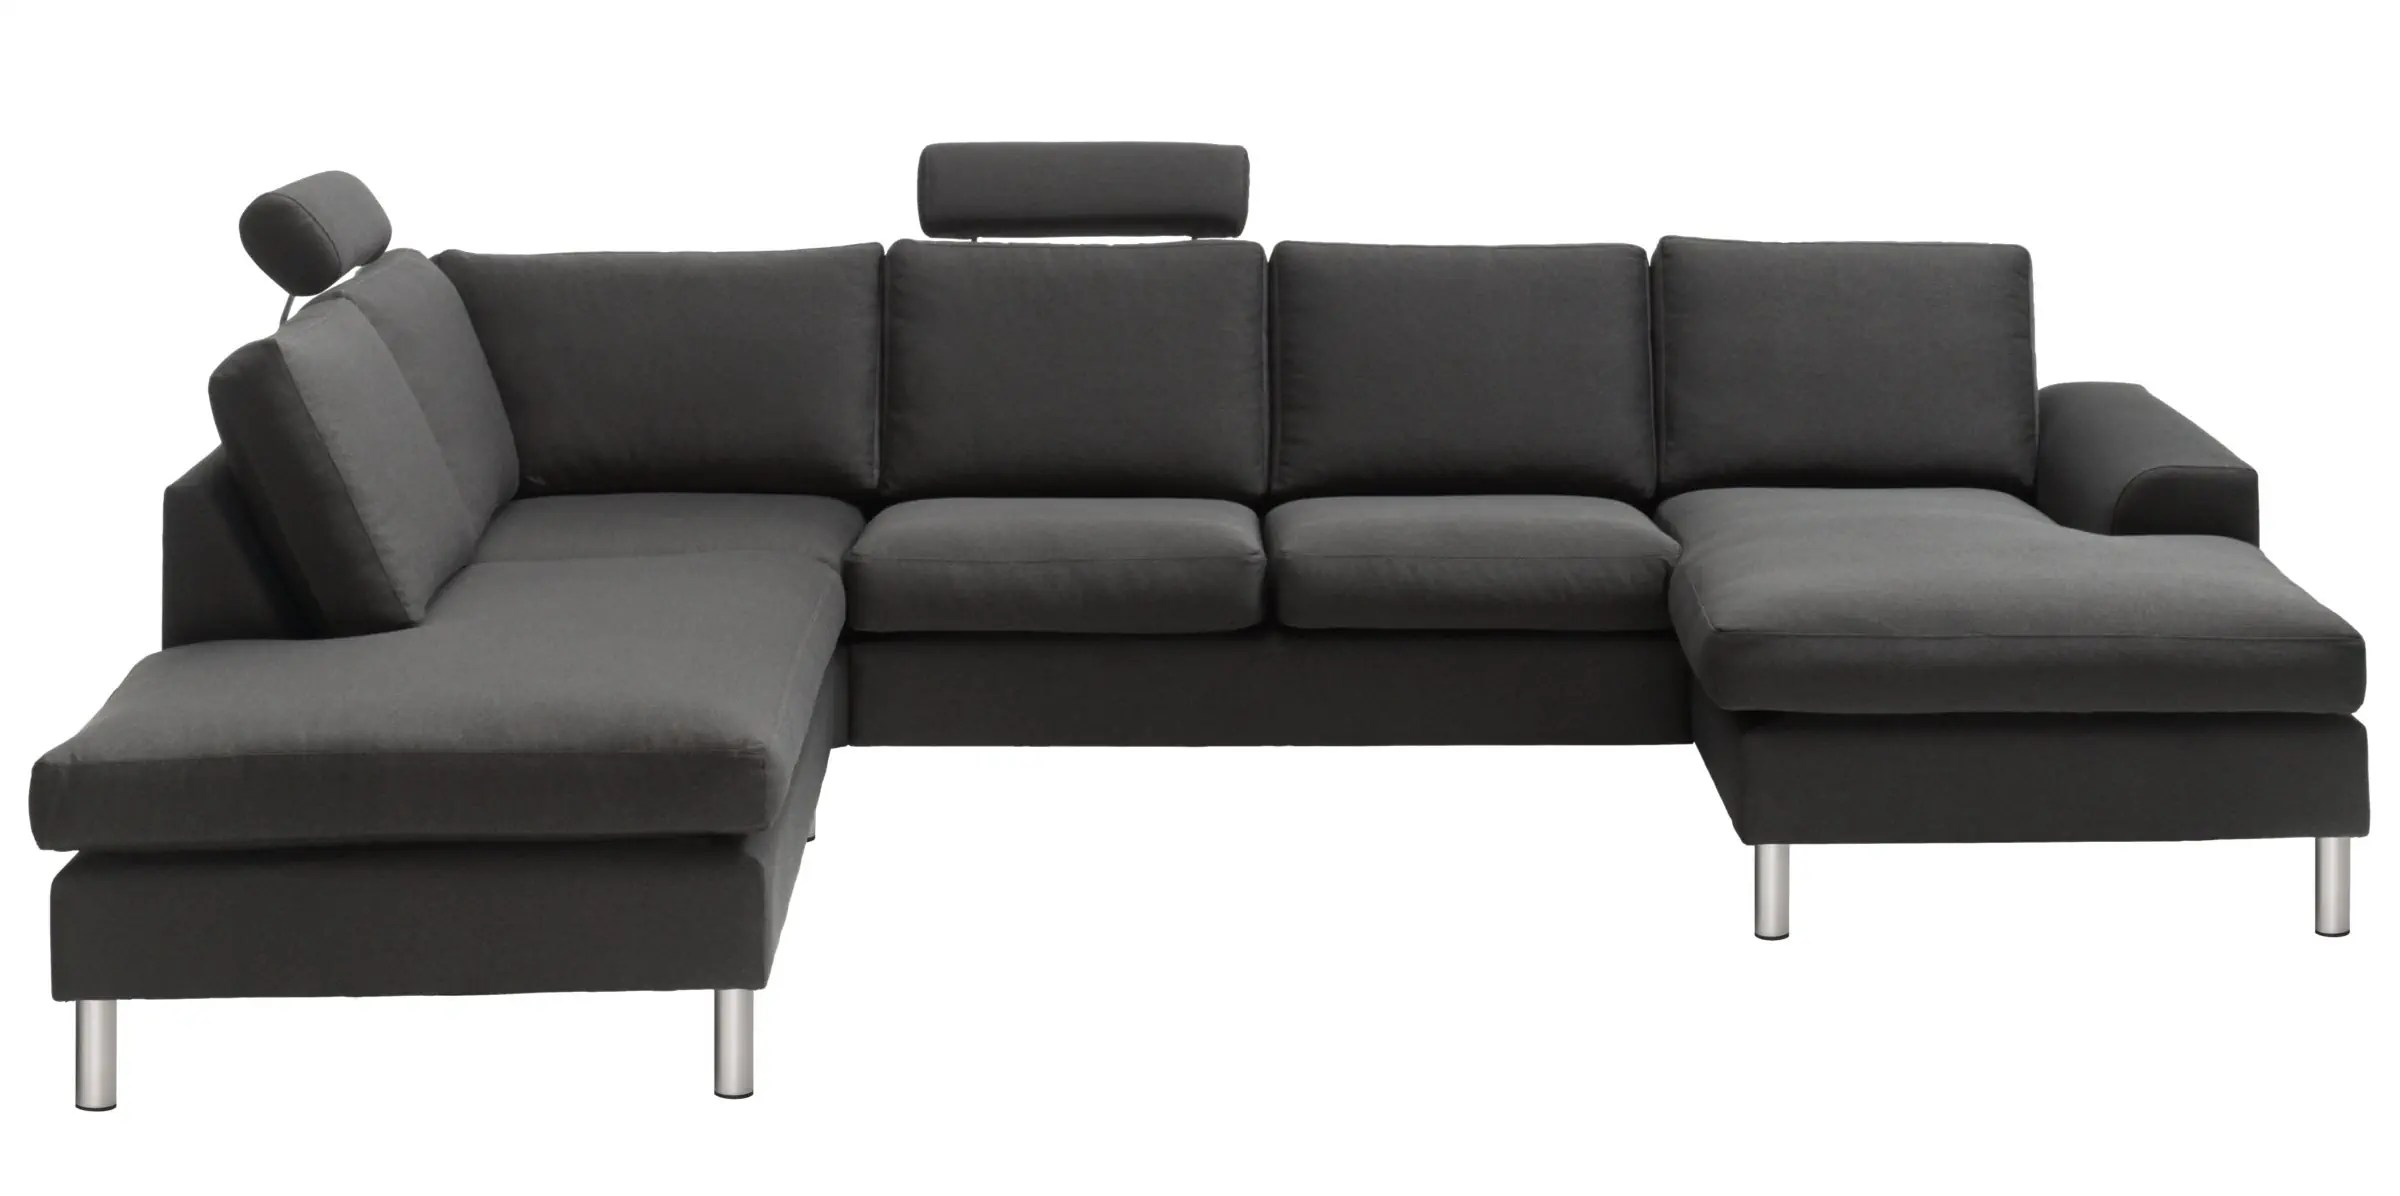 Big Sofa über 3m Couch U Form Modernes Sofa In U Form Mit Relaxfunktion